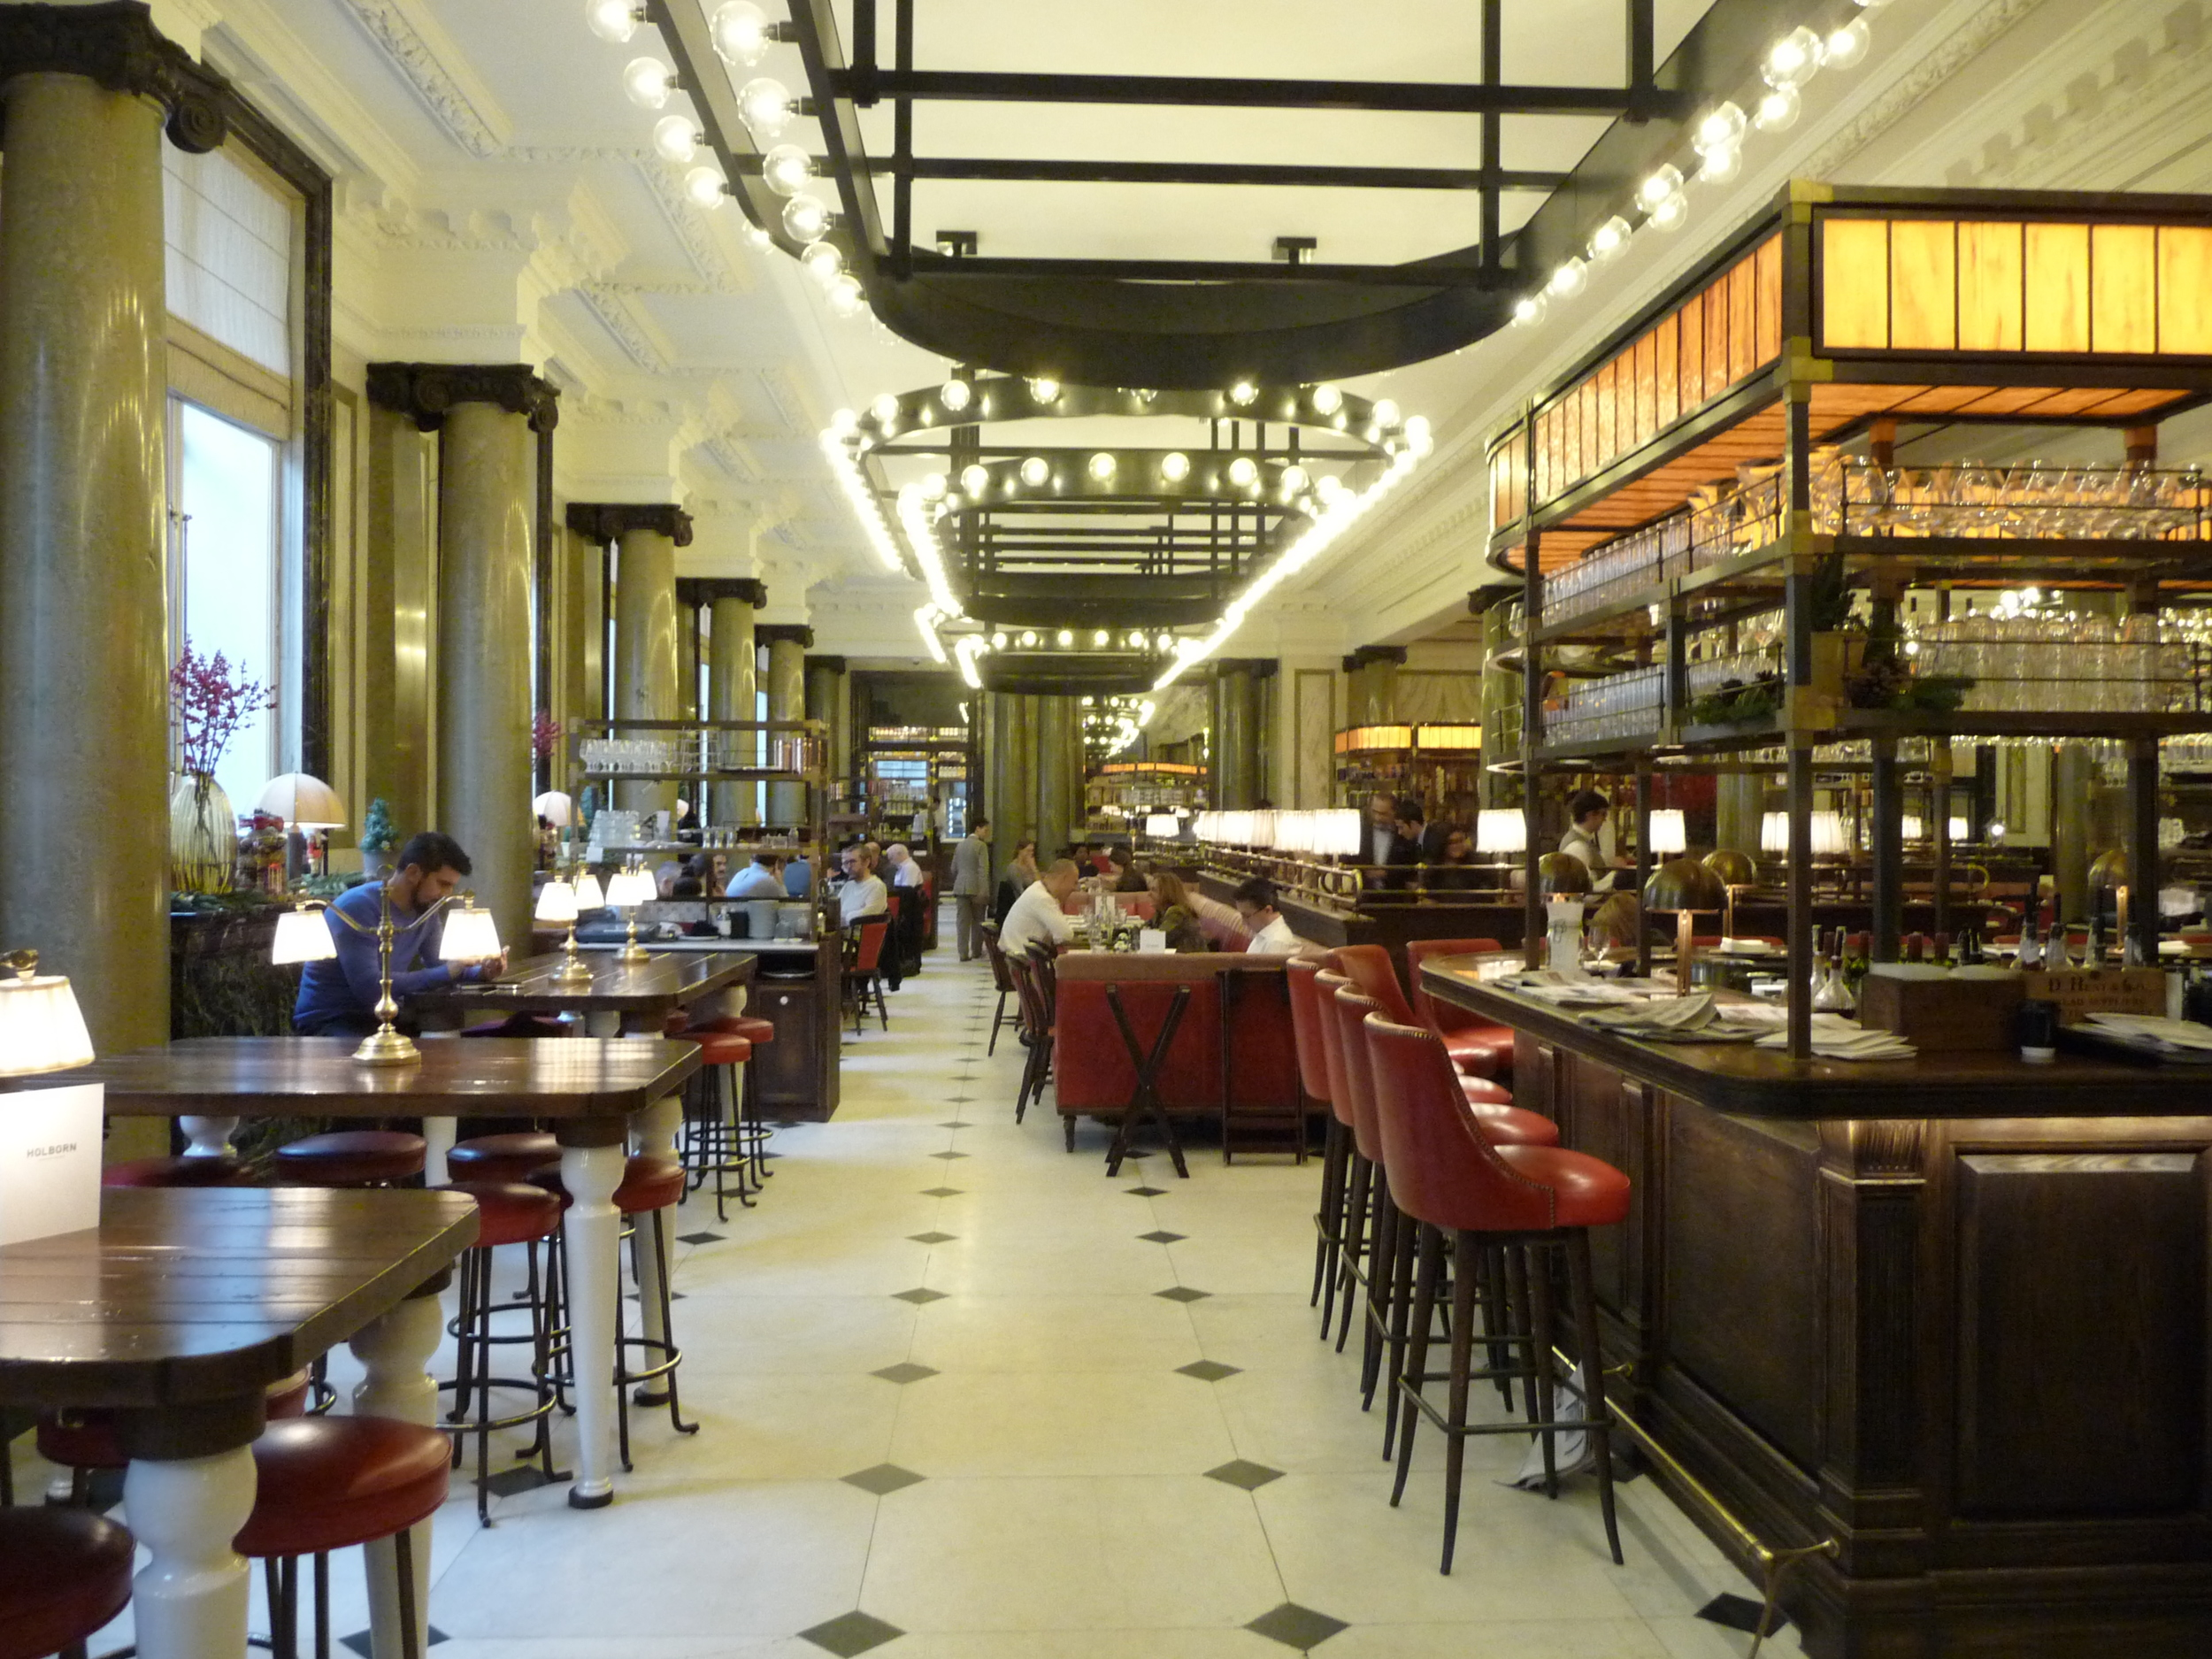 The stunning Holborn dining roomrestaurant where I had the most amazing three course supper